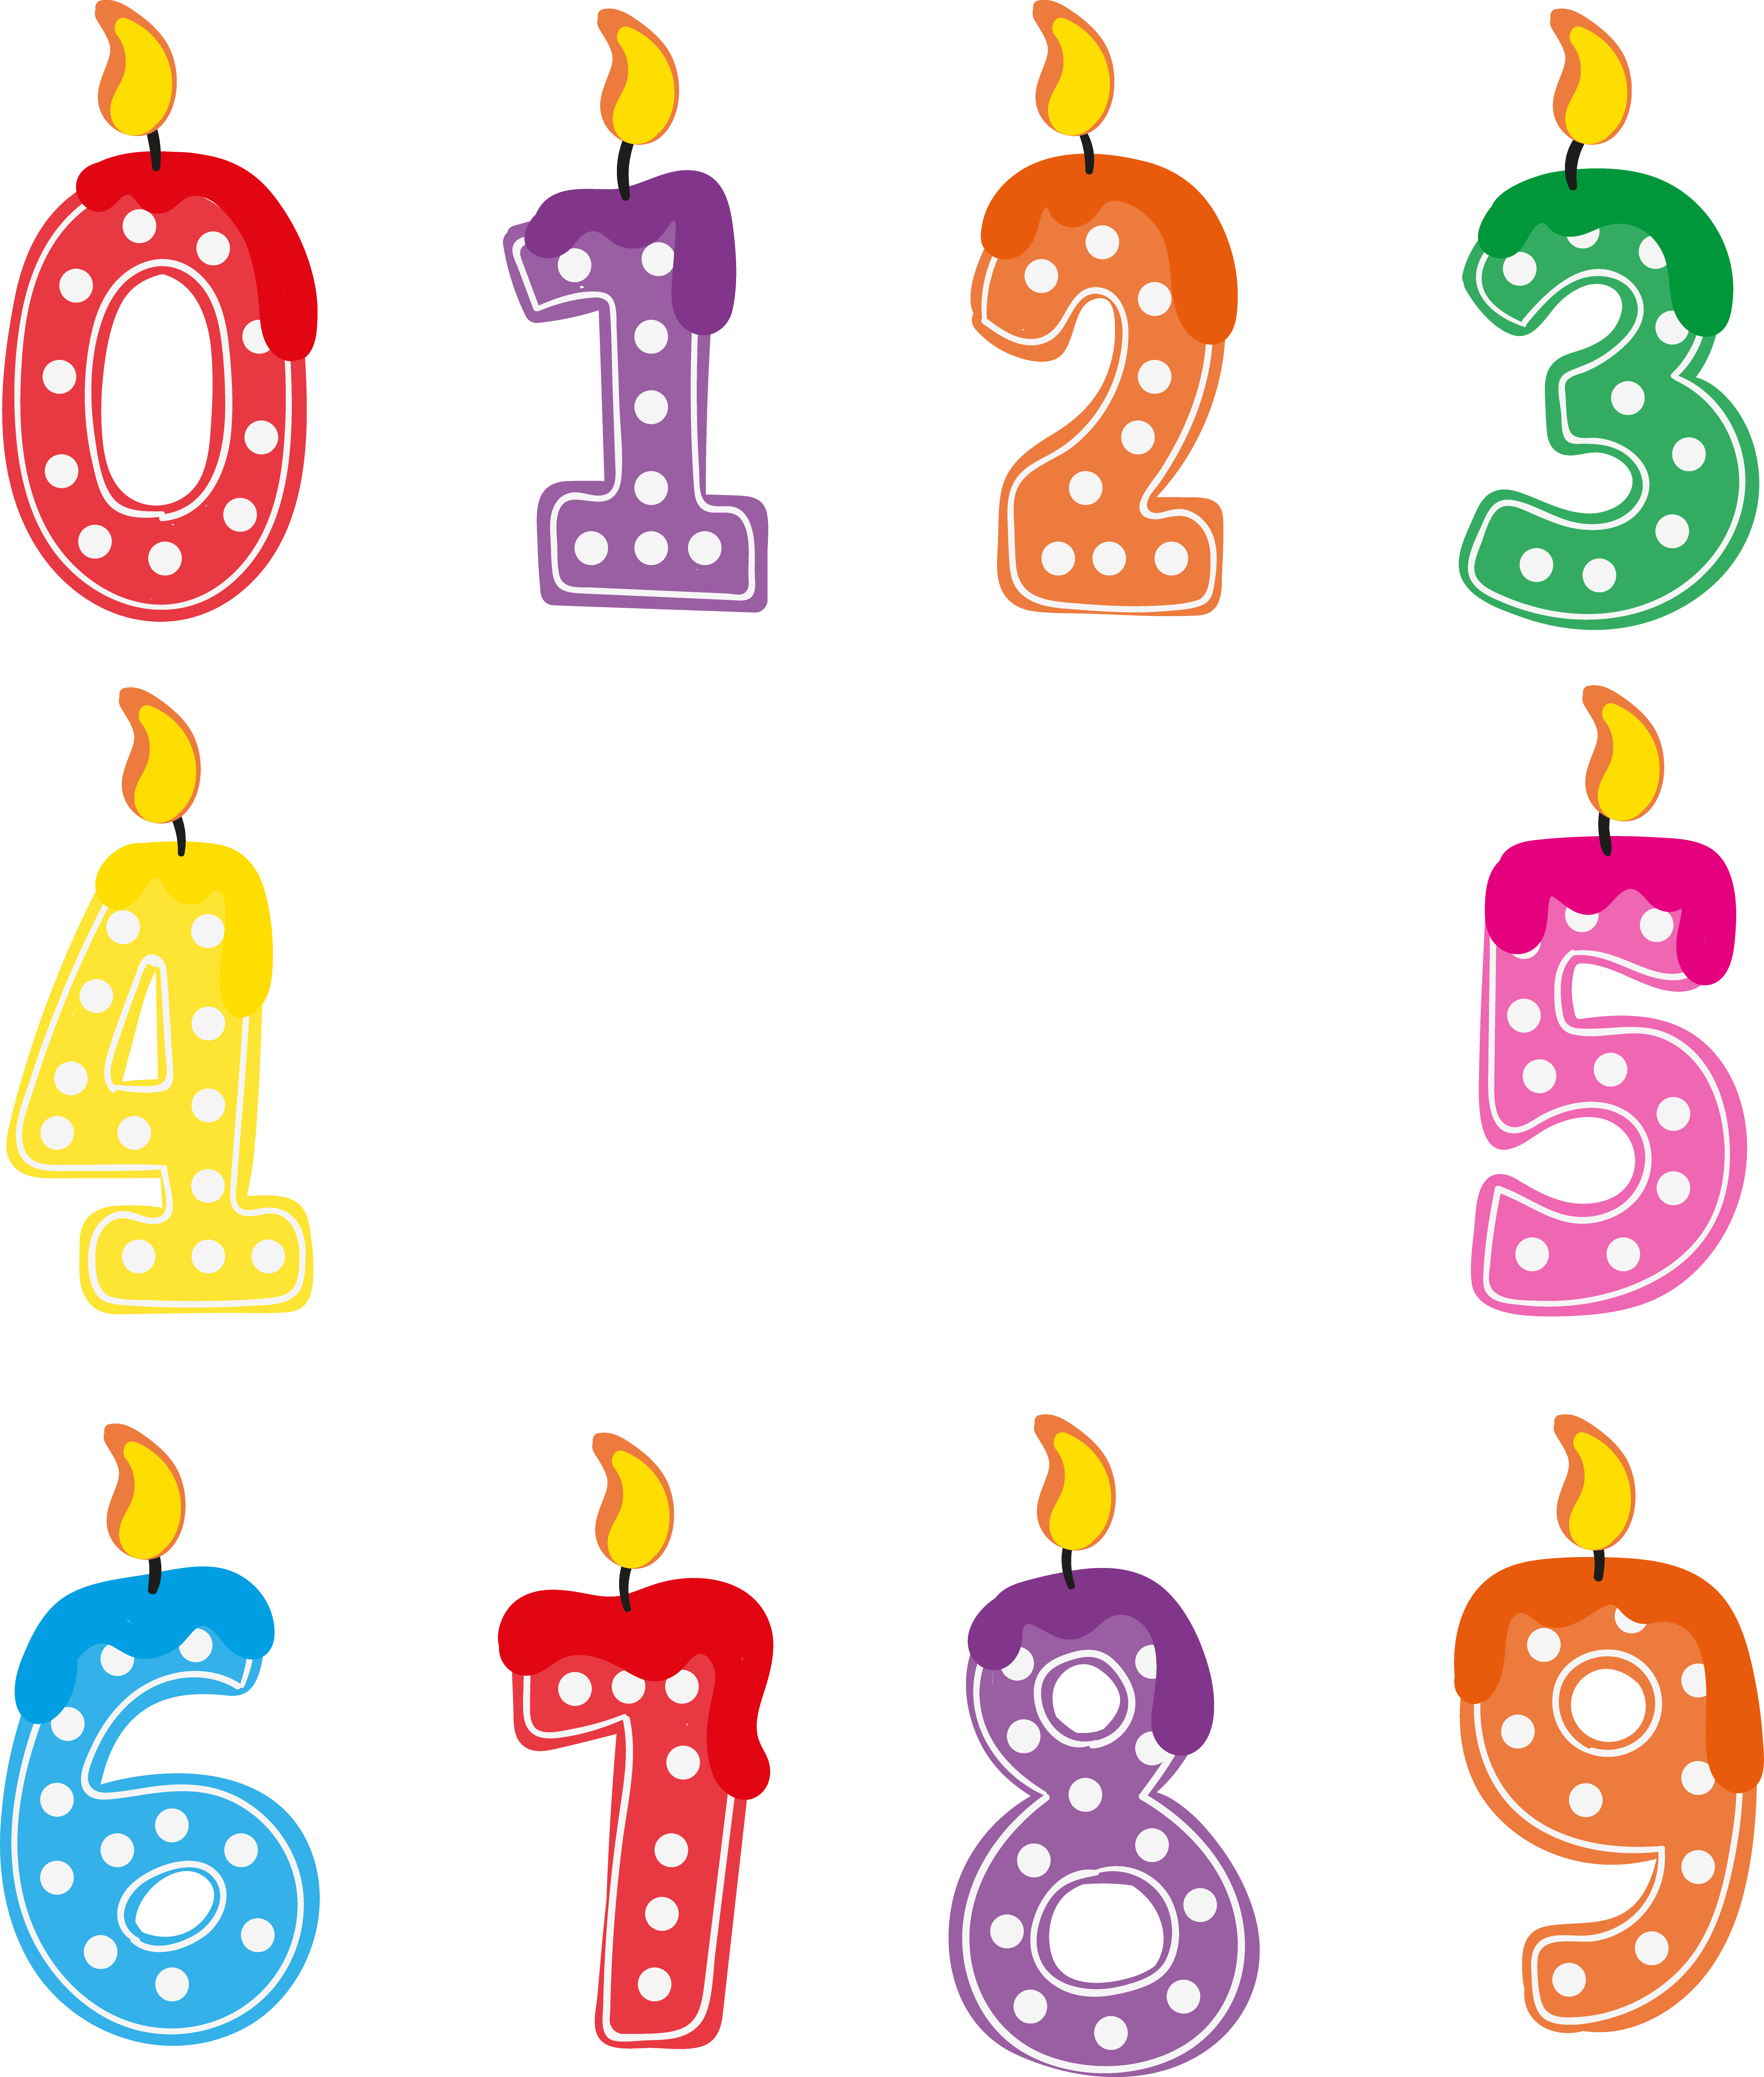 Birthday candles png images. Download free transparent image